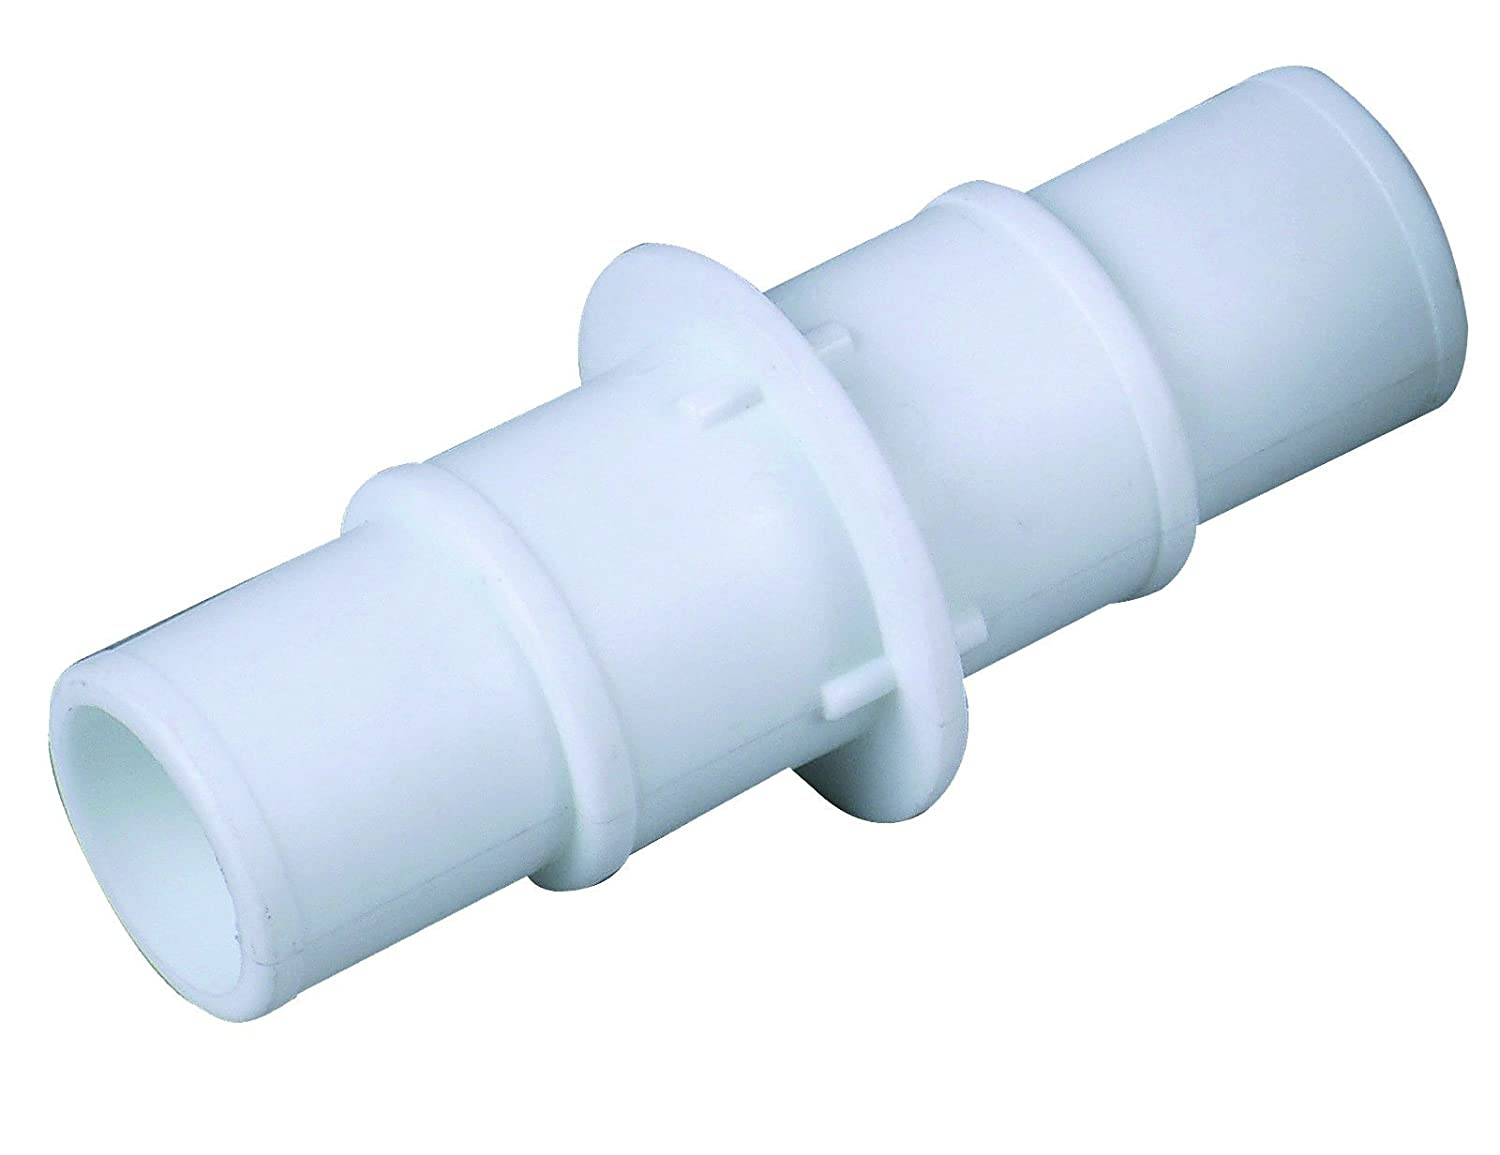 well2wellness ® White Universal Hose Connector for 32 and 38 mm, Reduce from 38 to 32 mm Pool + Sauna Bräunig GmbH